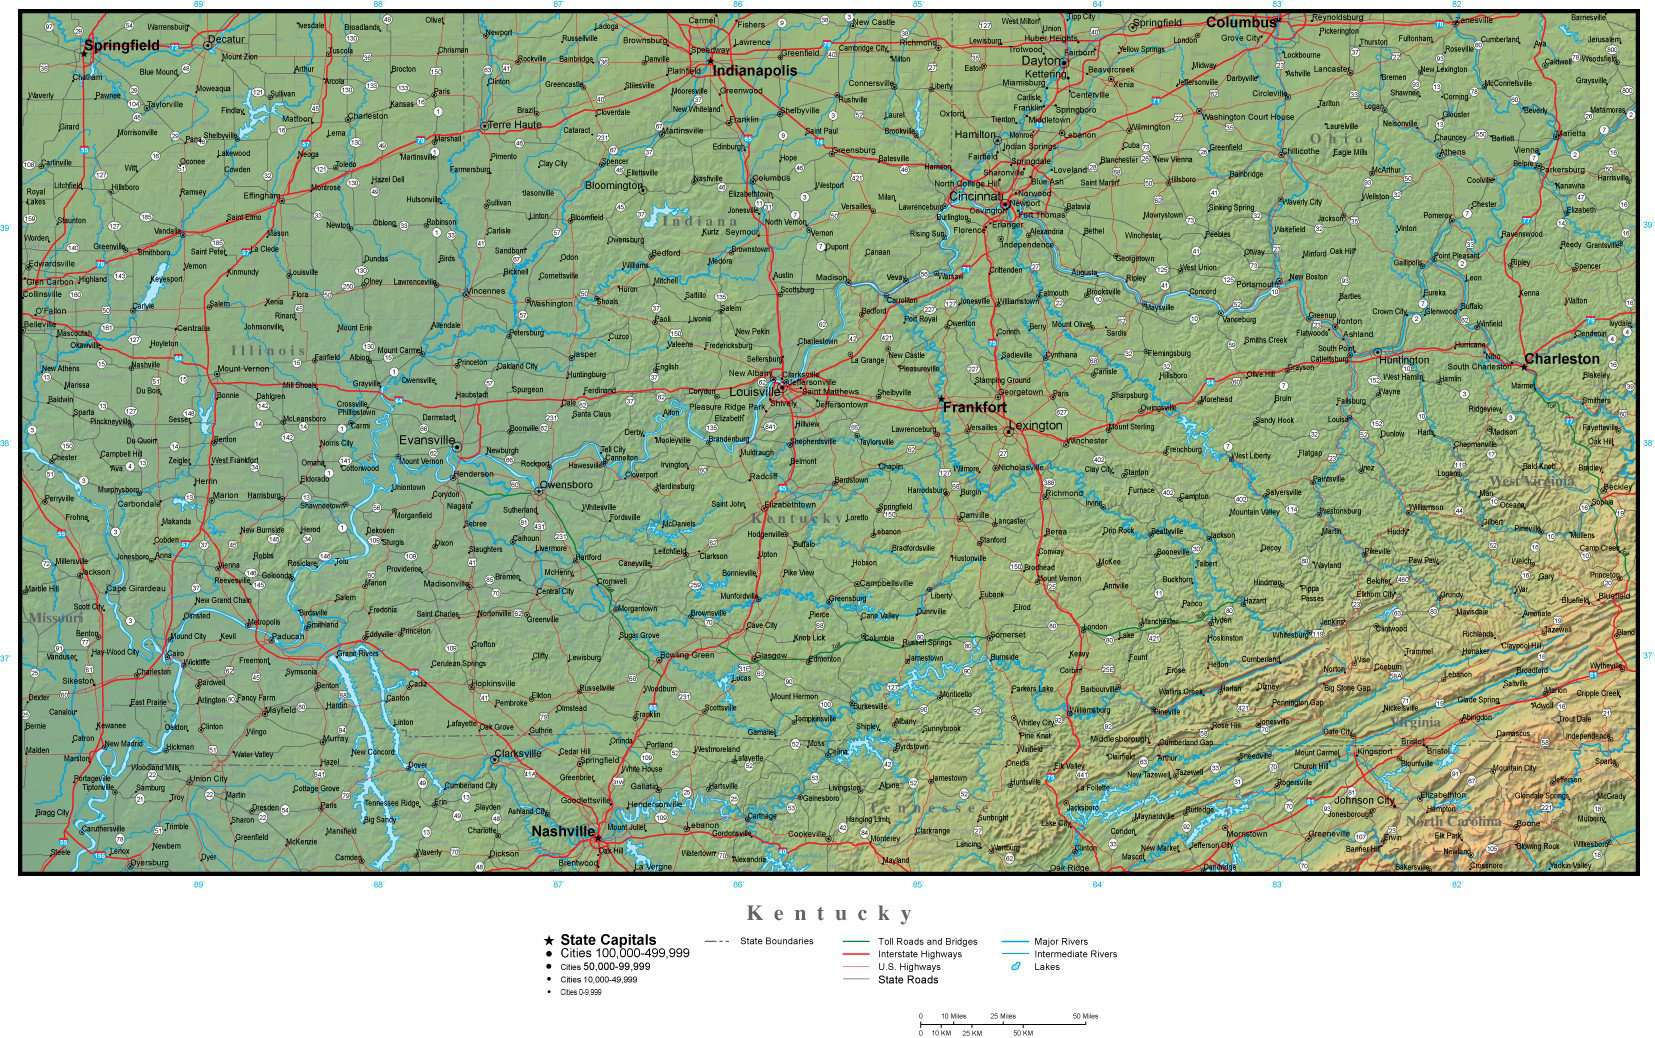 State Map Of Kentucky With Cities.Kentucky State Map Plus Terrain With Cities Roads Map Resources